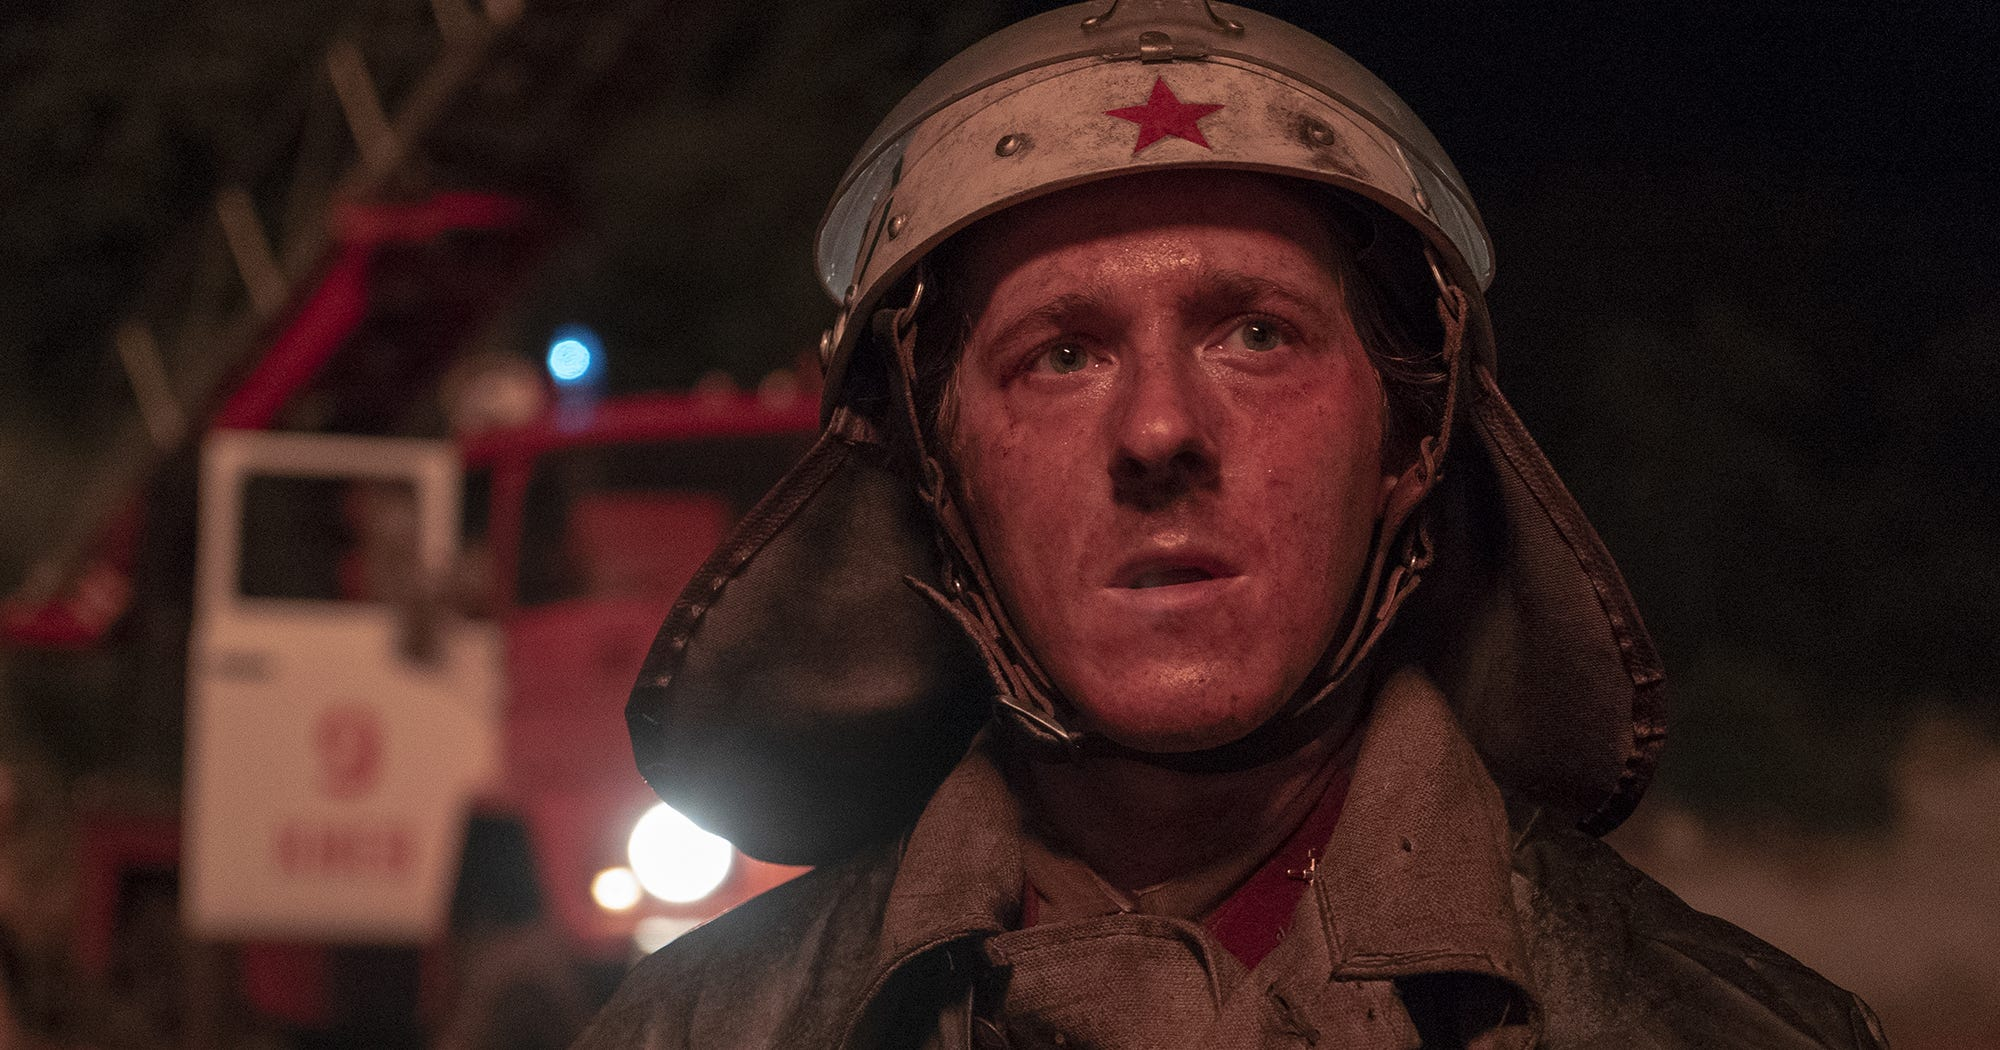 What Happened At Chernobyl? Real Story Behind HBO Show